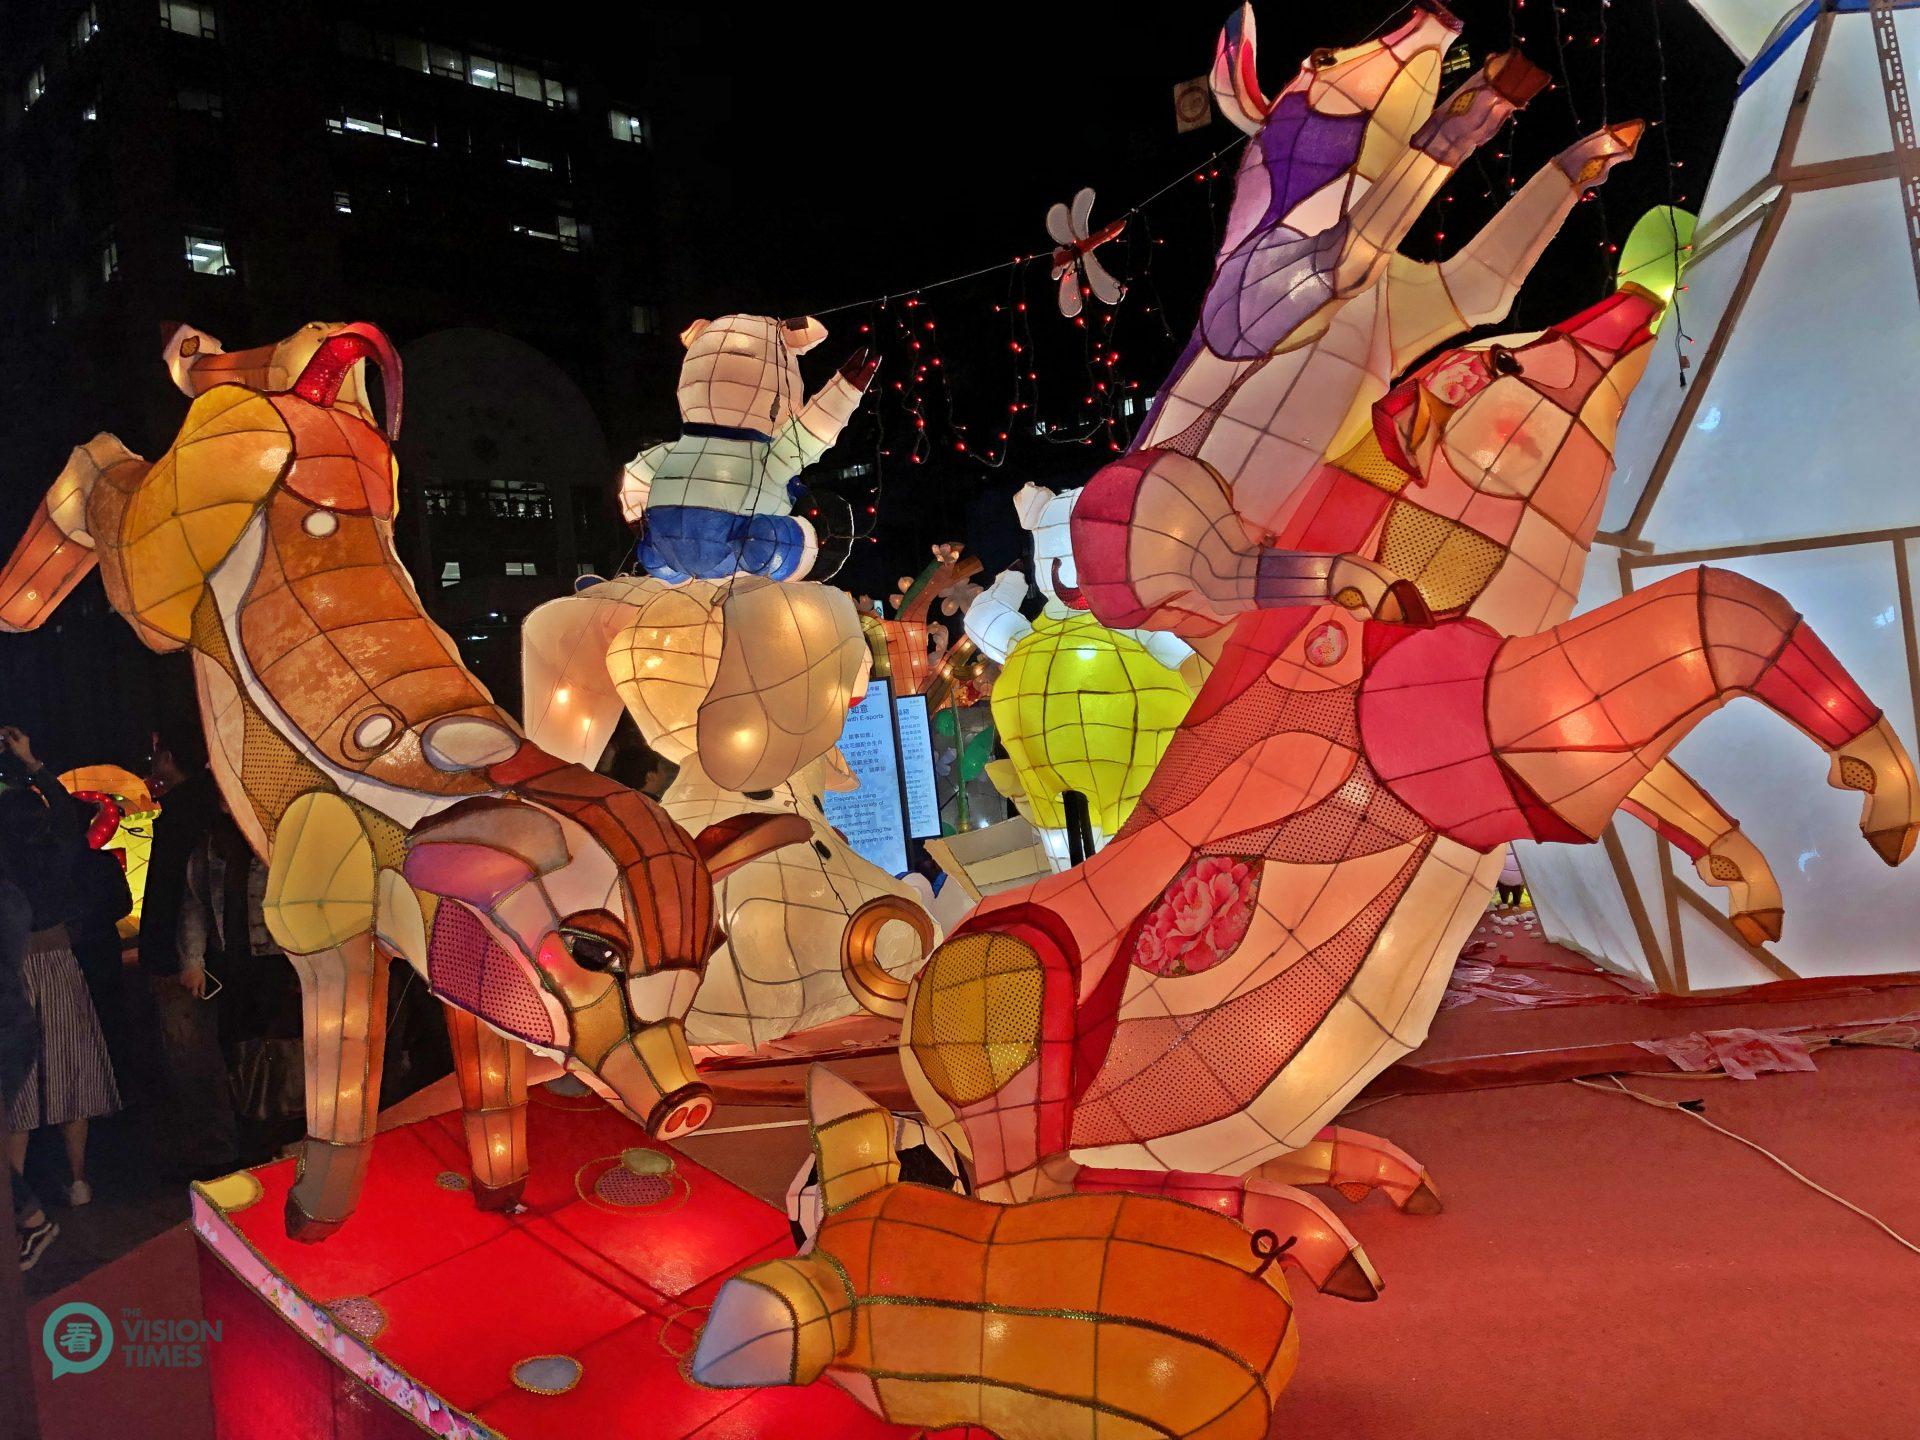 A lantern featuring playful pigs at the 2019 Taipei Lantern Festival. (Image: Billy Shyu / Vision Times)